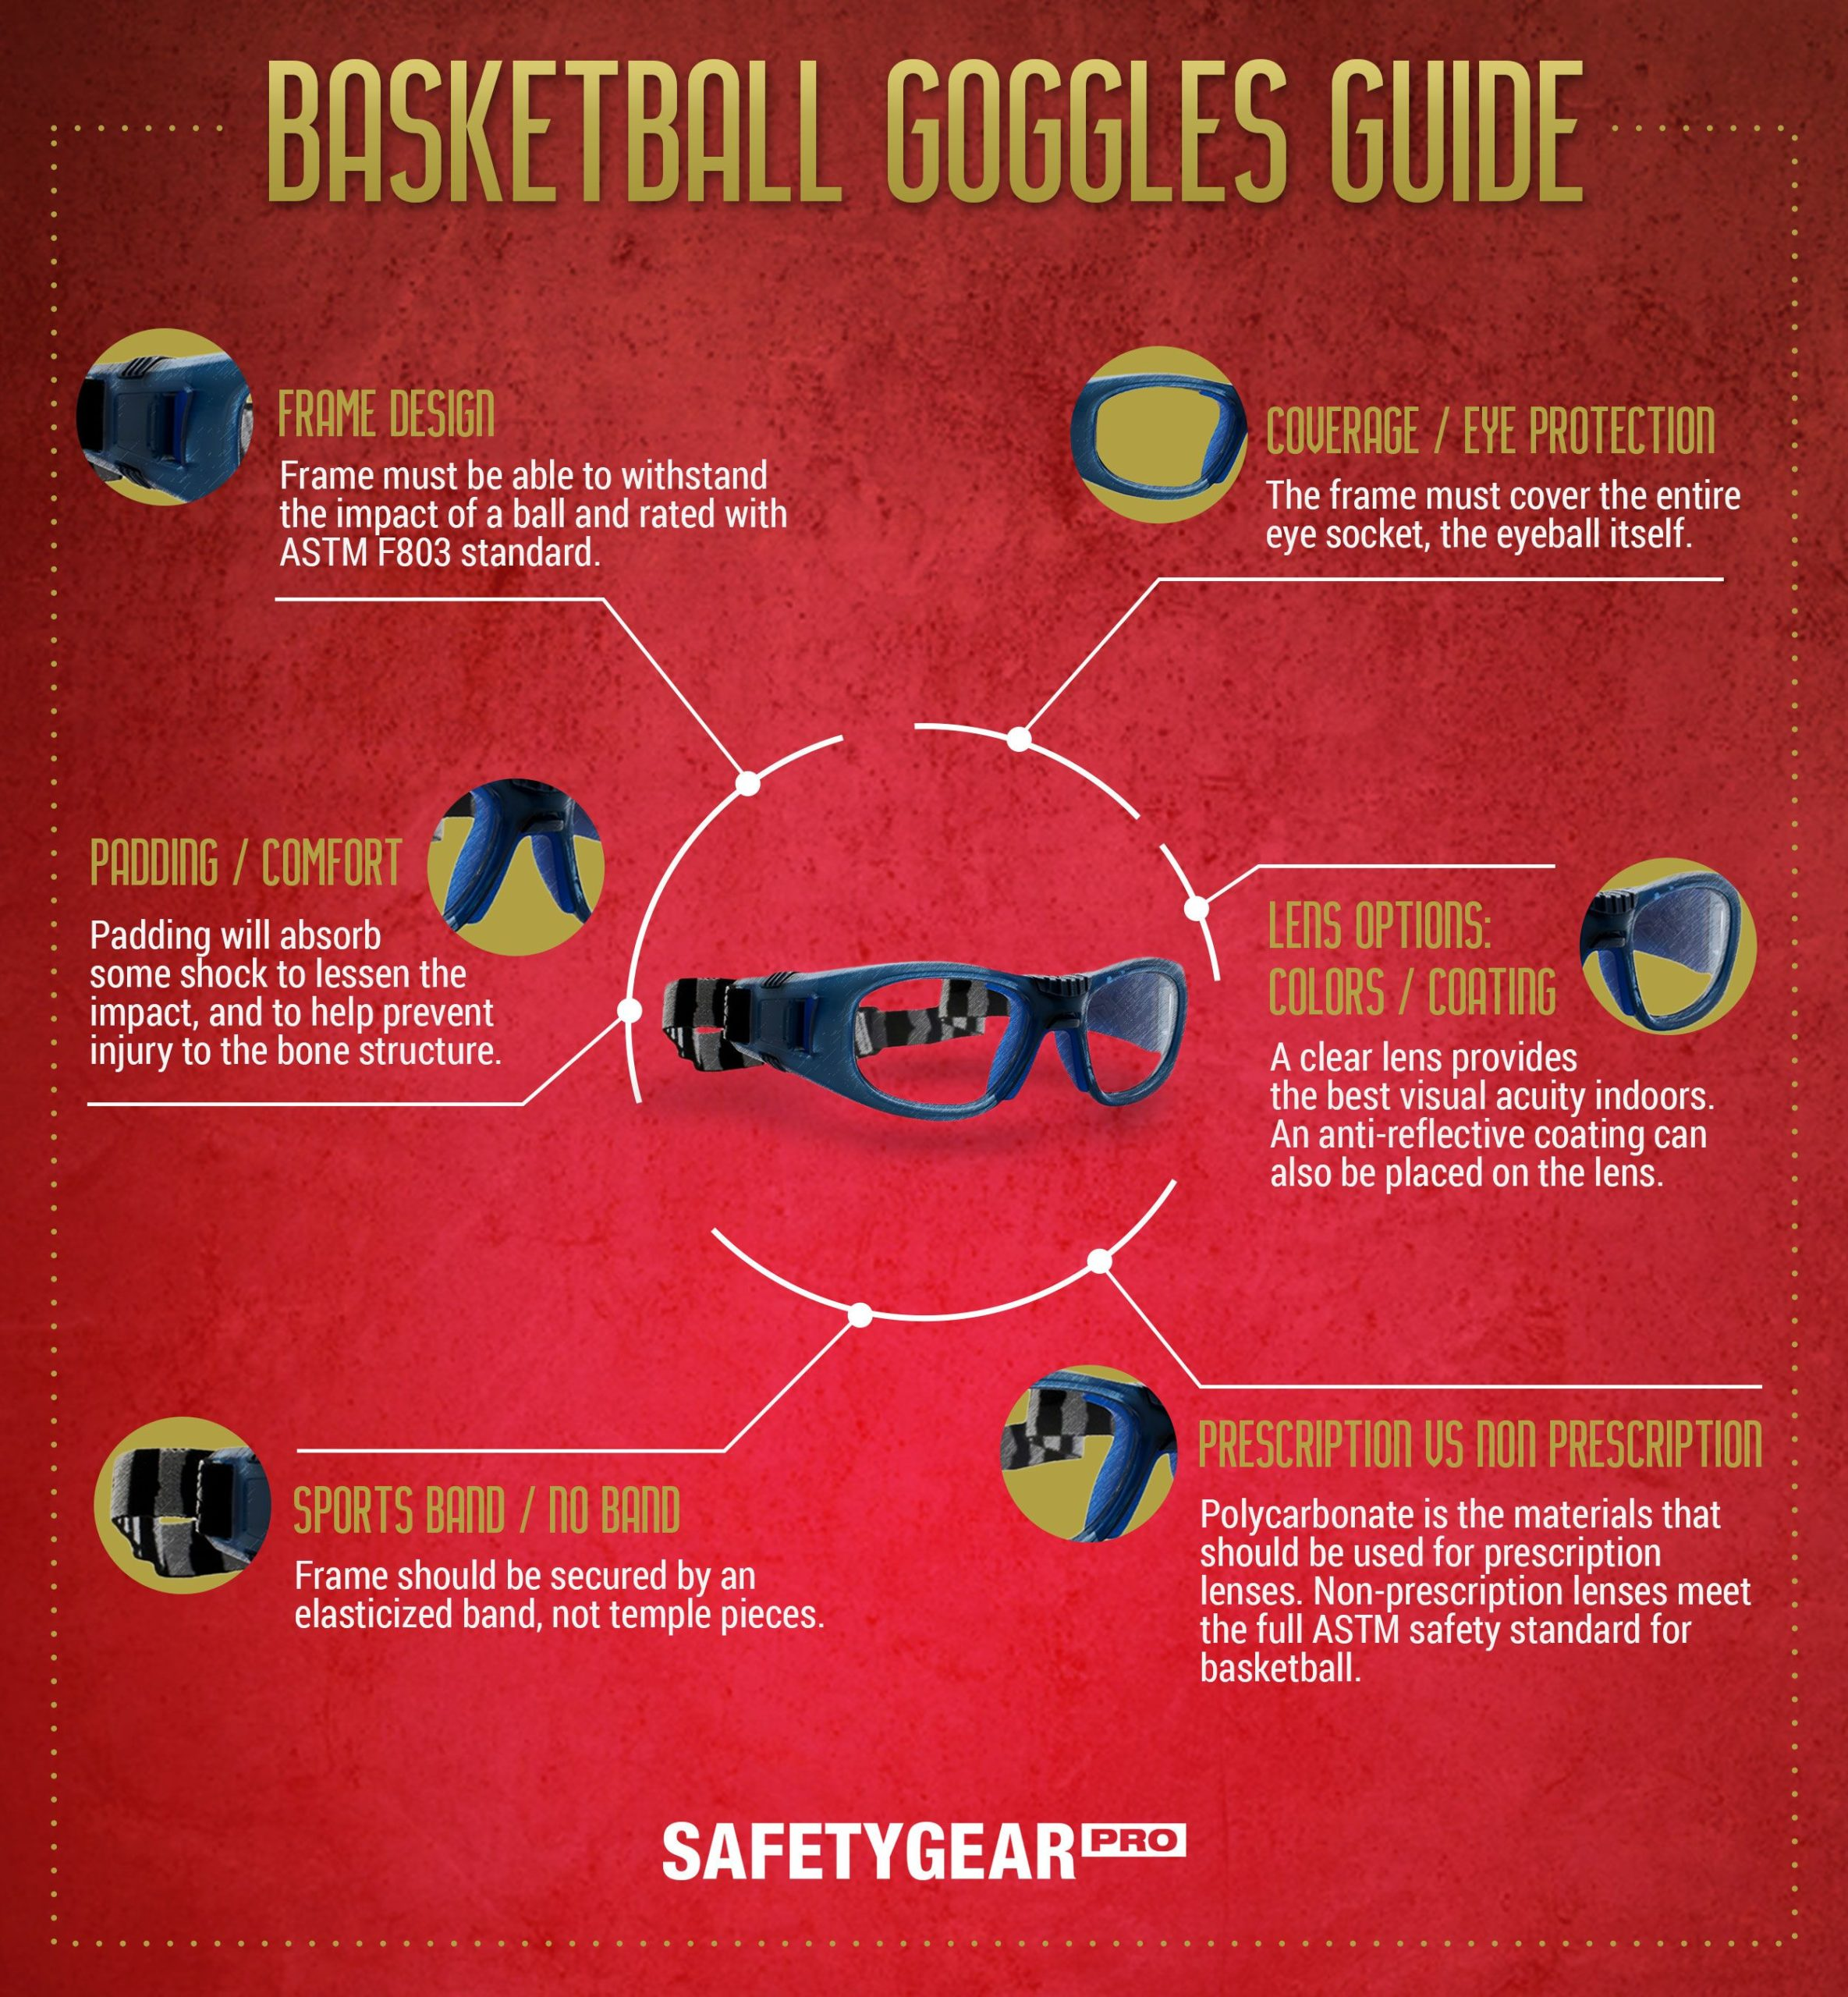 Basketball Goggles Guide Infographic